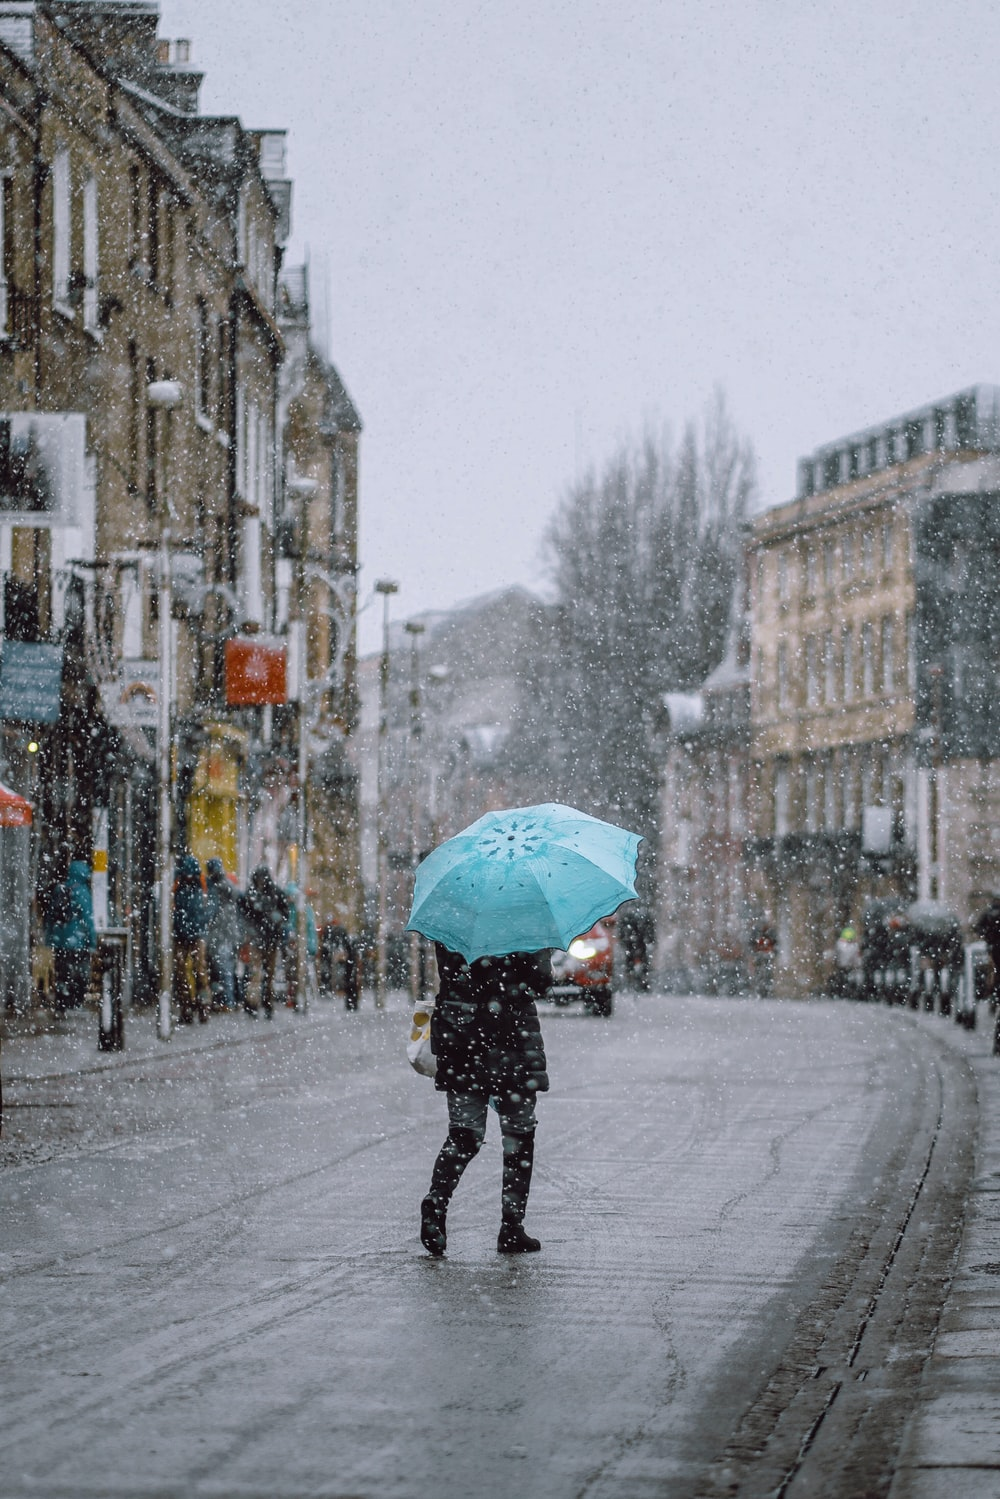 person using blue umbrella walking on street with falling snow